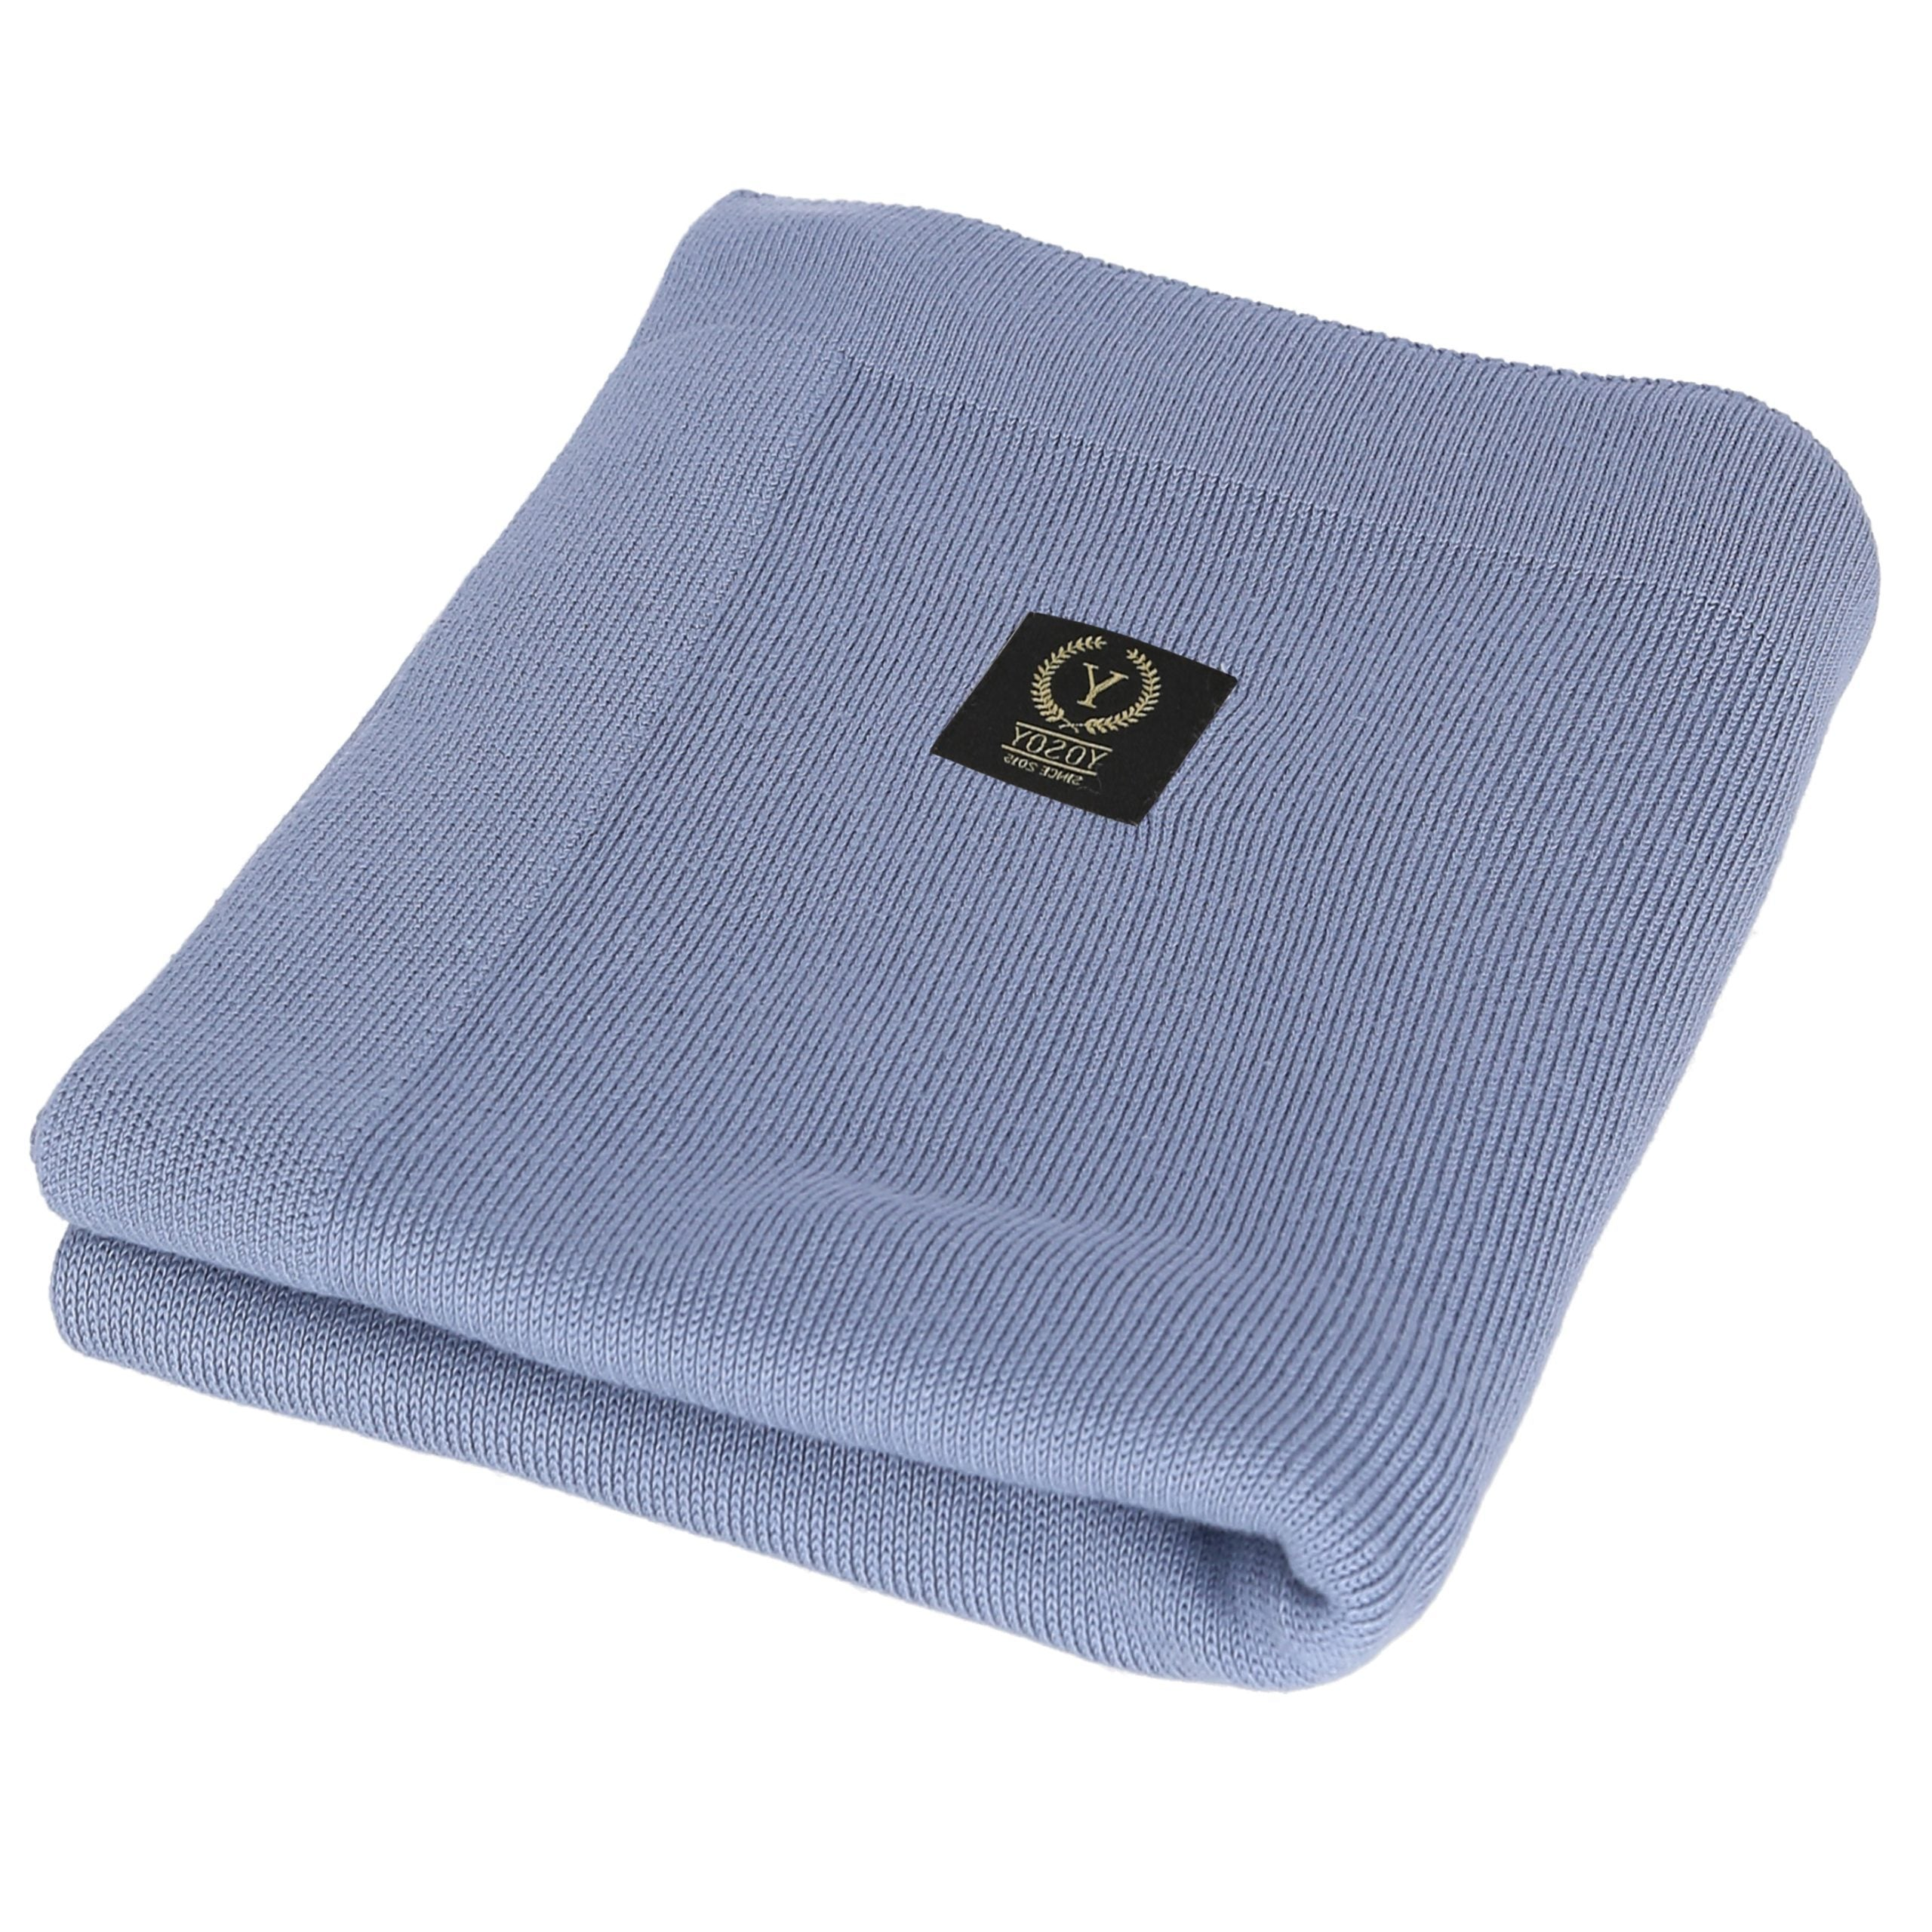 Light Bamboo Blanket Dusty Blue - MyLullaby